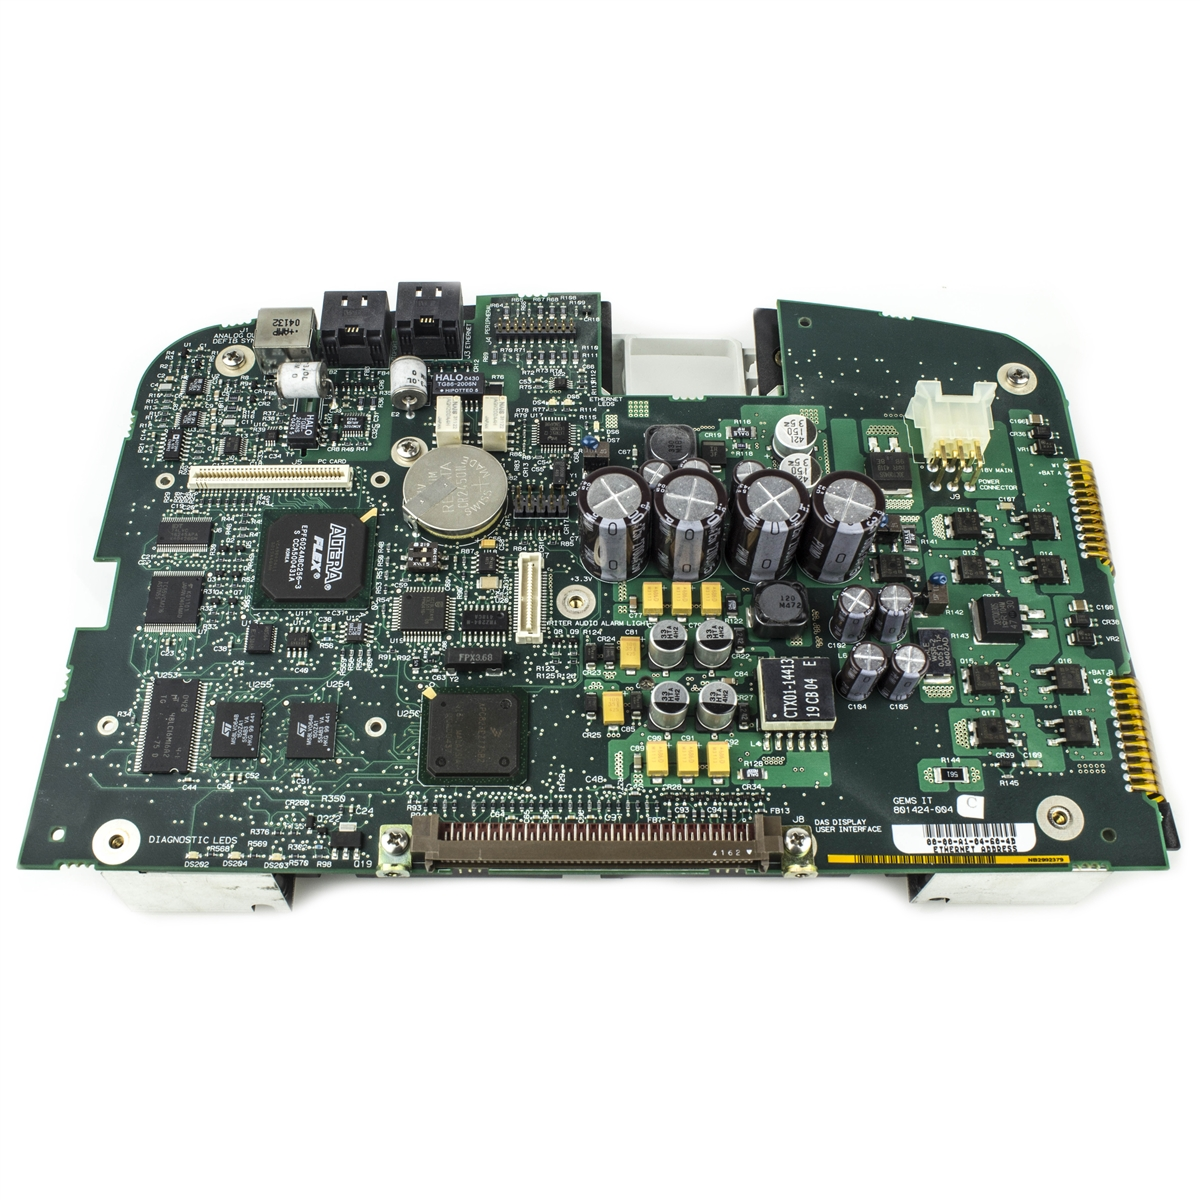 Ge Dash 3000 4000 5000 Patient Monitor Main Cpu Processor Circuit Larger Photo Email A Friend